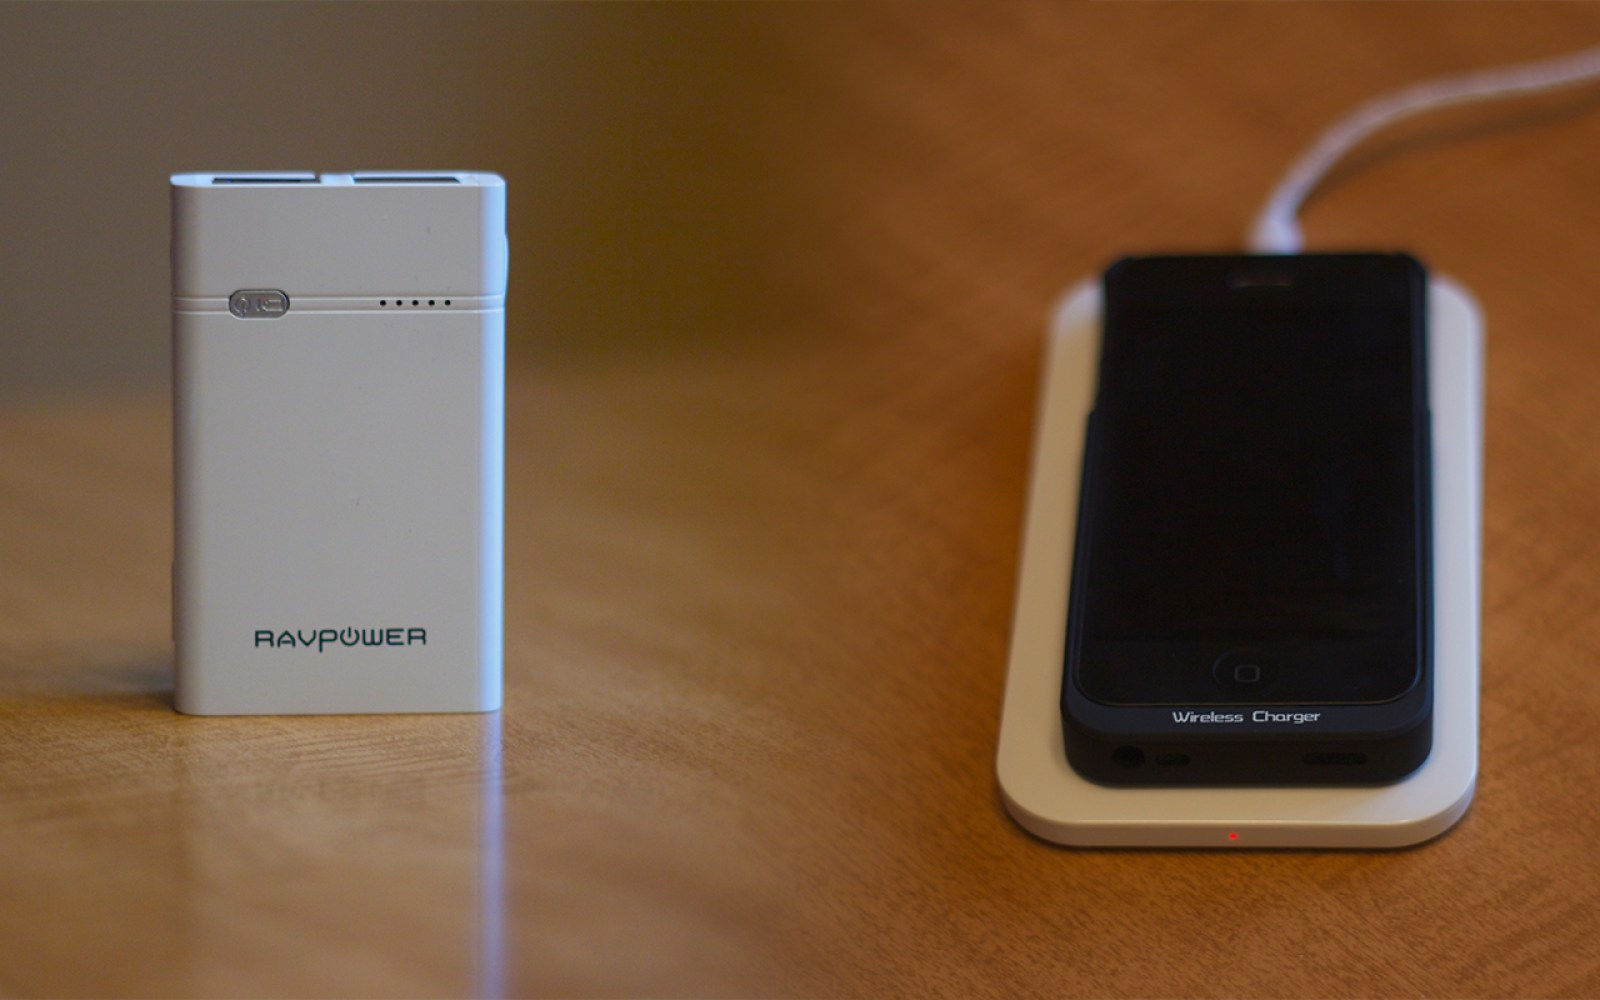 Review combo: RAVPower Qi-Enabled Wireless Charger and xRobot Power Bank